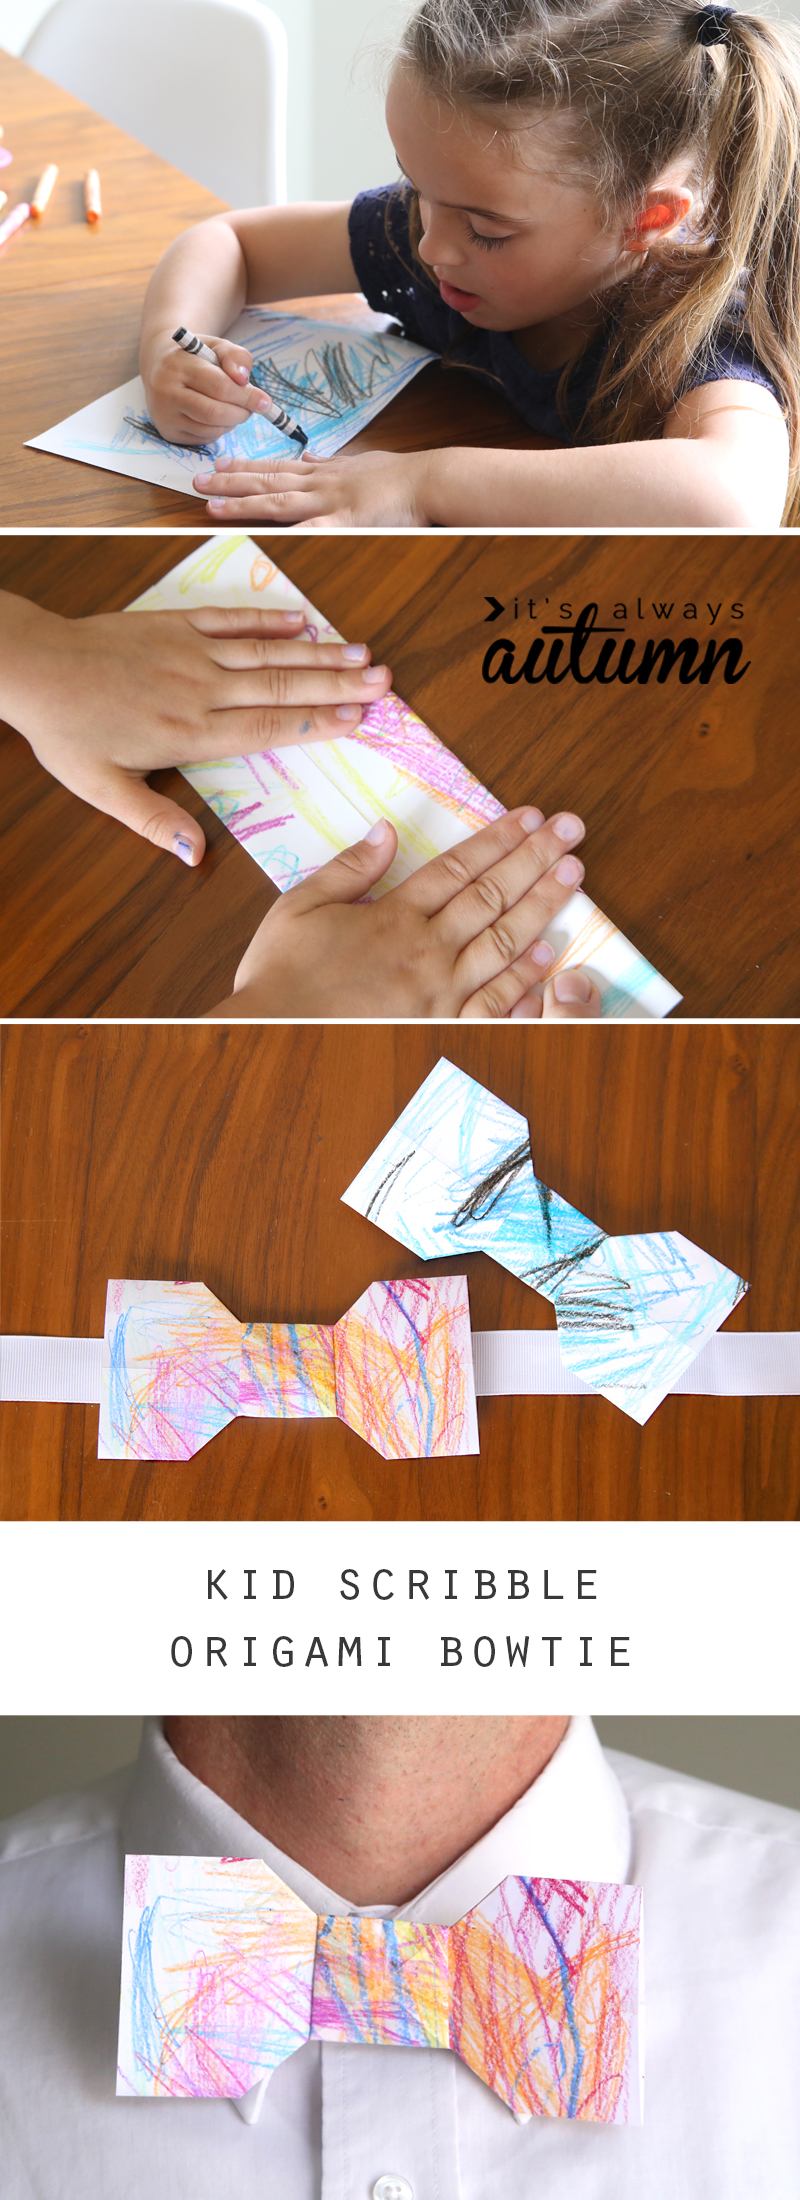 girl coloring on paper, hands folding paper, origami bowtie